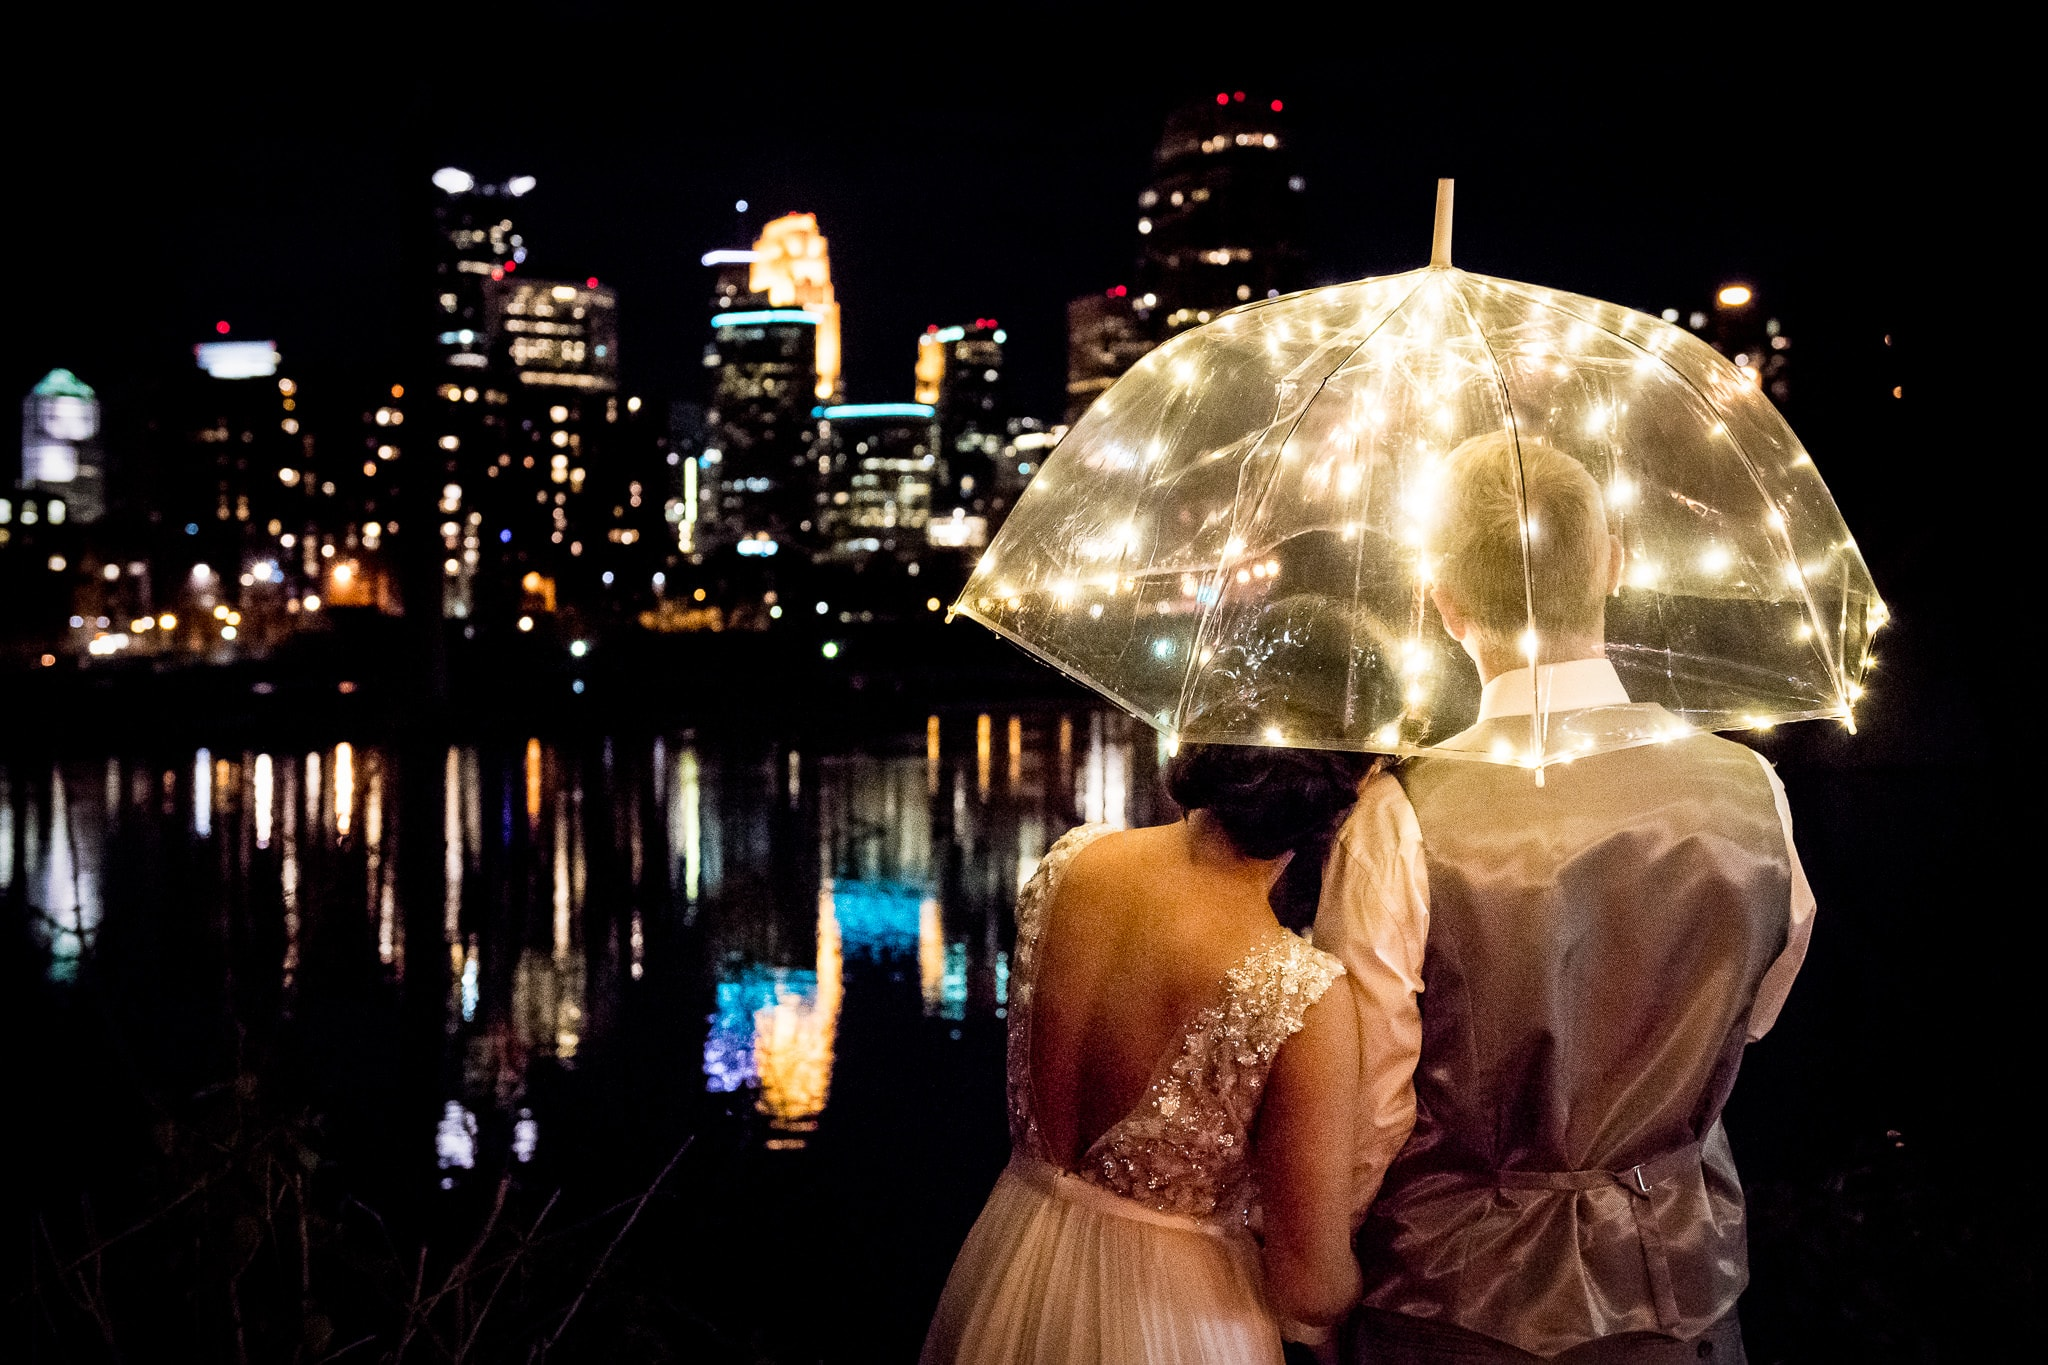 Couple embracing under an umbrella with the downtown Minneapolis skyline in the background